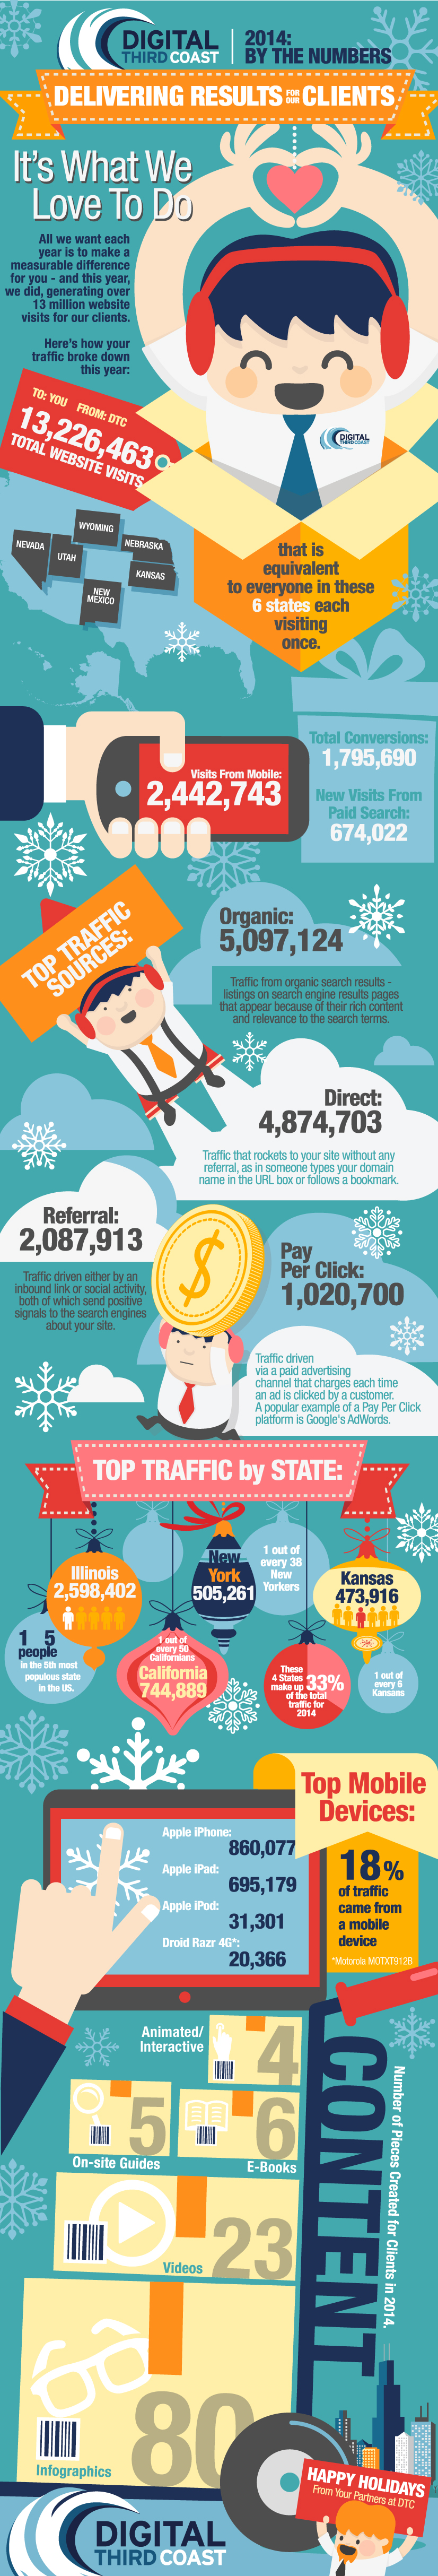 DTC  by the numbers 2014 holiday infographic